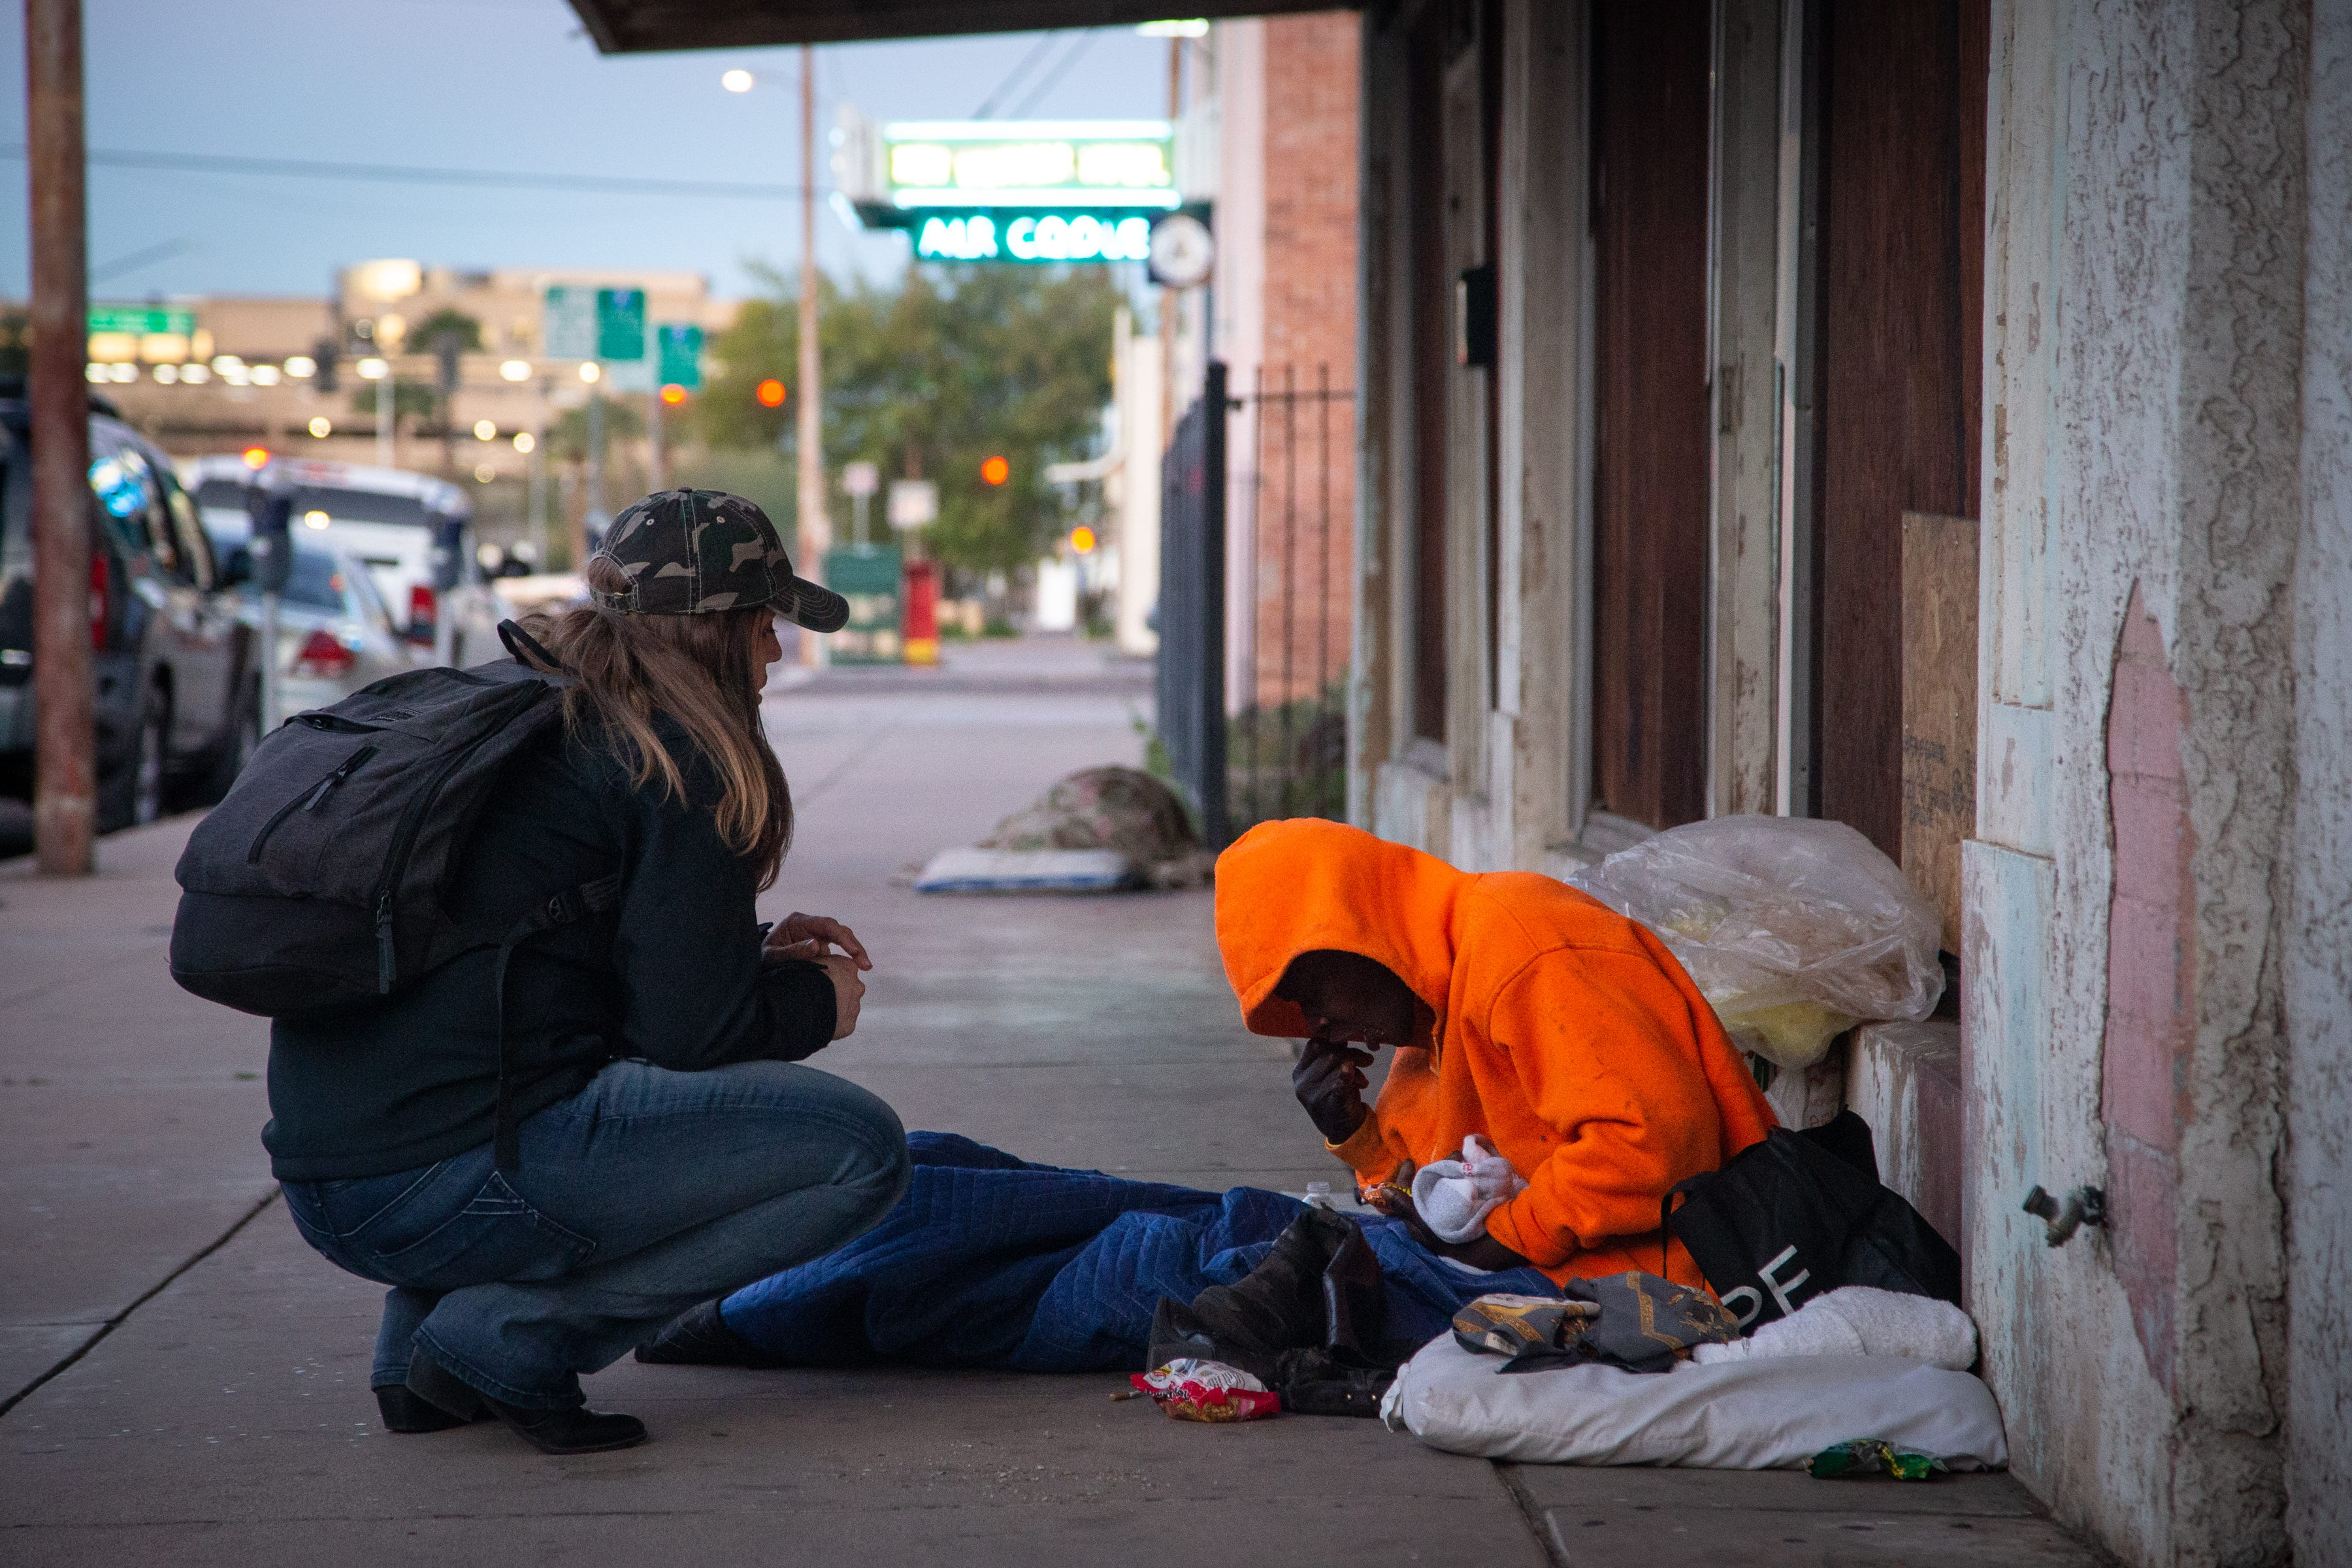 Homelessness in the Valley nears crisis point